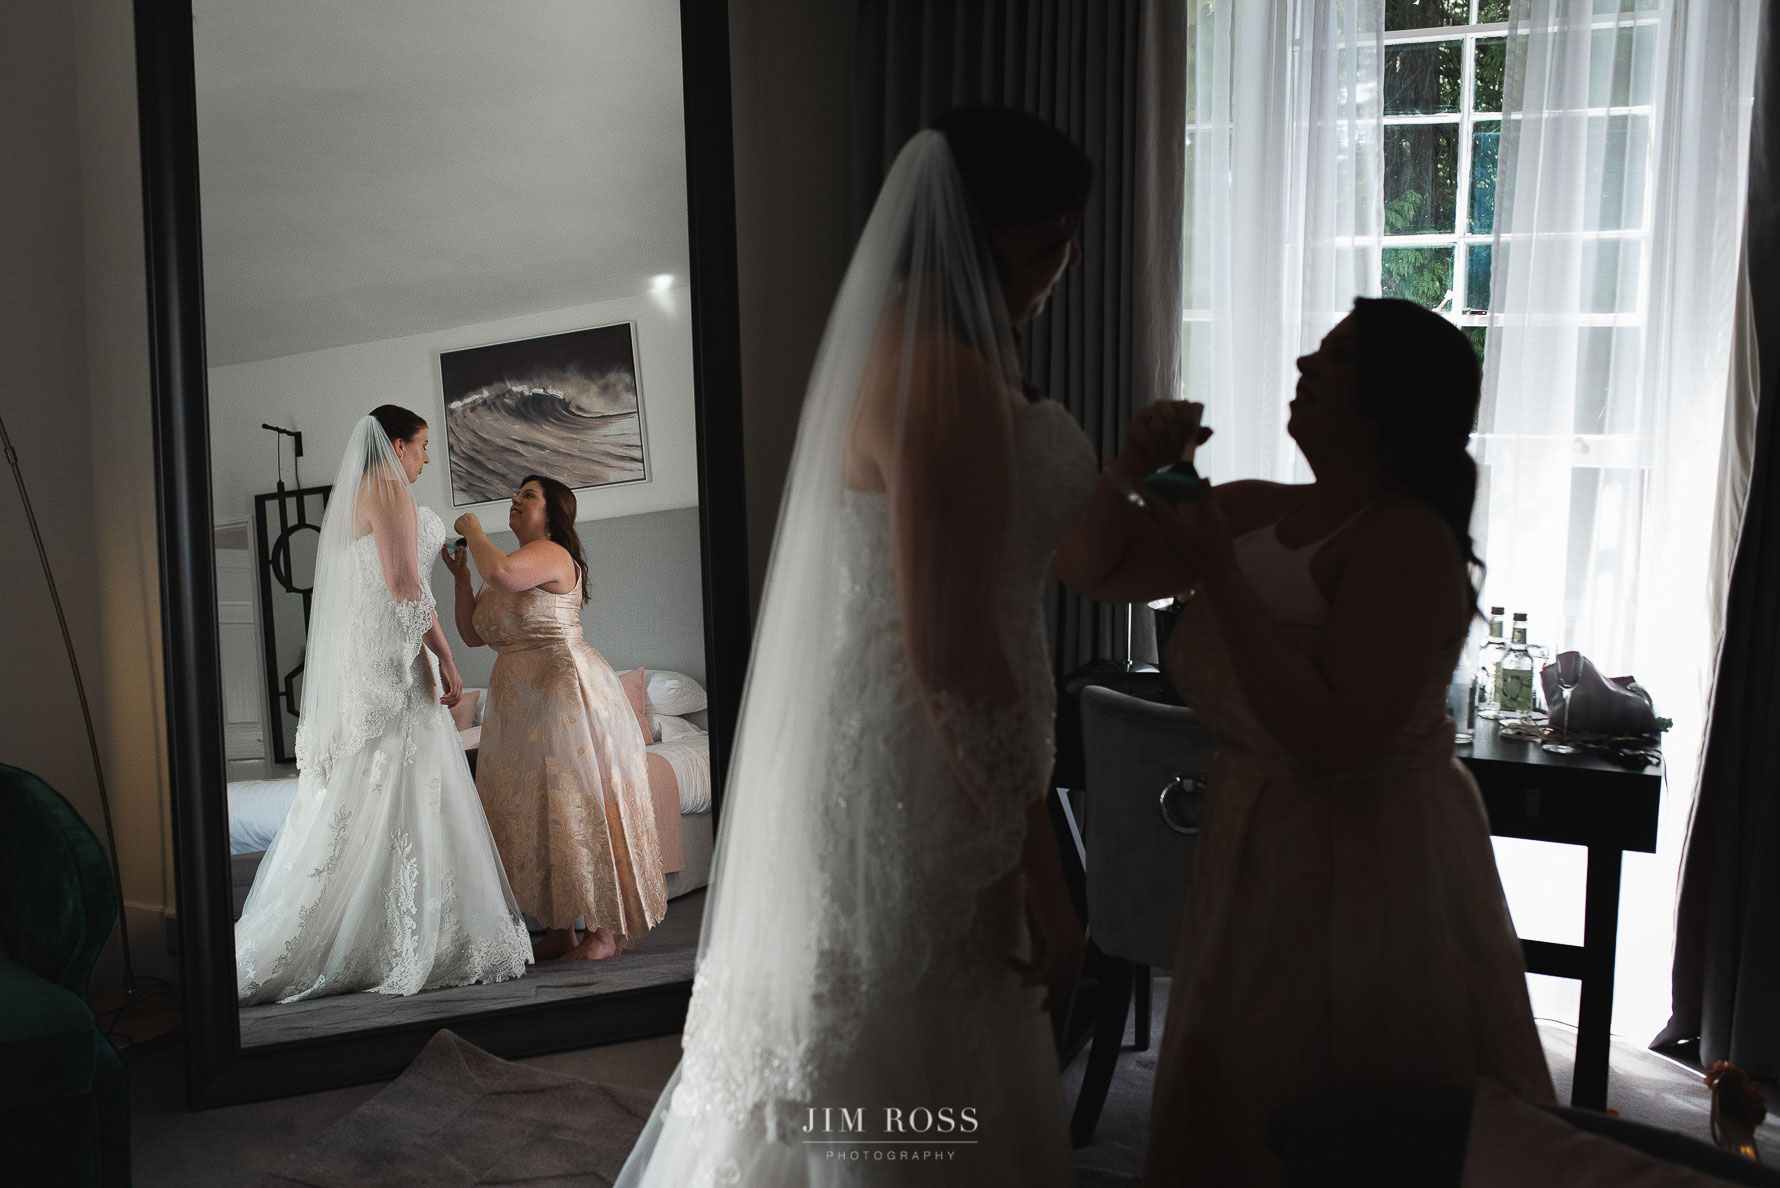 Bride and sister in mirror and silhouette